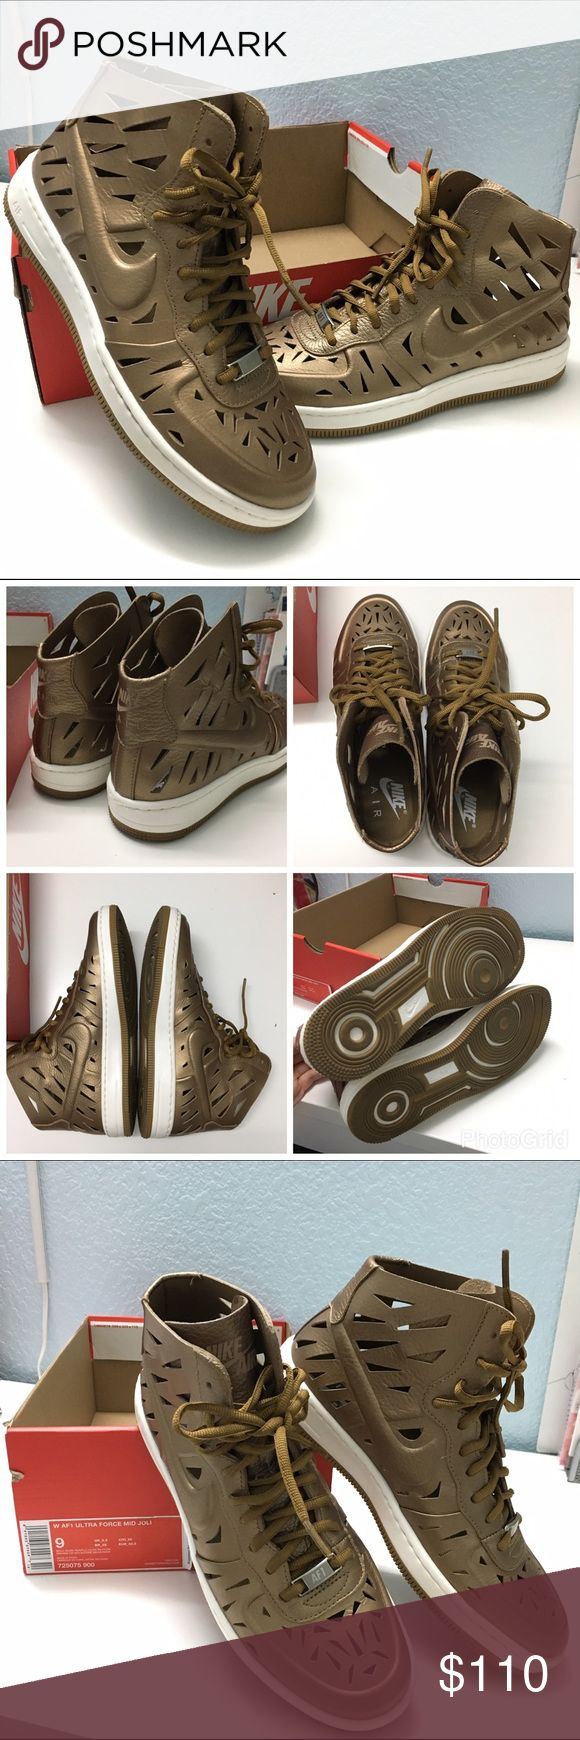 Nike Ultra Force Mid Joli AF1 Brand new in box women's Air Force 1 Ultra Force Mid Joli  Gold - RARE!  Size 9 Women's  Super cute and one of a kind shoes that will surely make your collection unique! Nike Shoes Sneakers